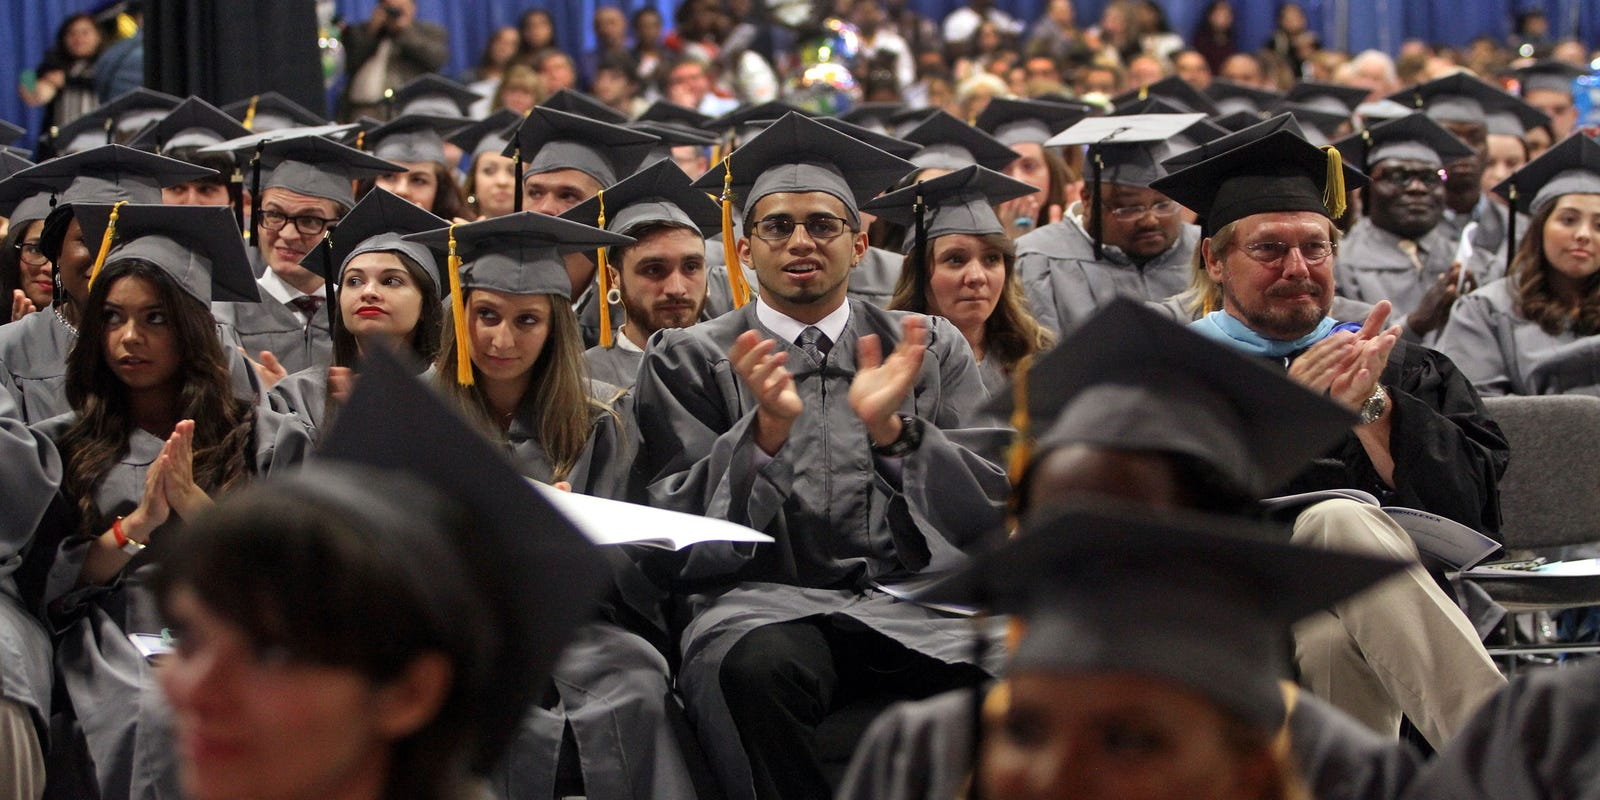 Andrea Suarez Segade middlesex county college holds 48th annual commencement